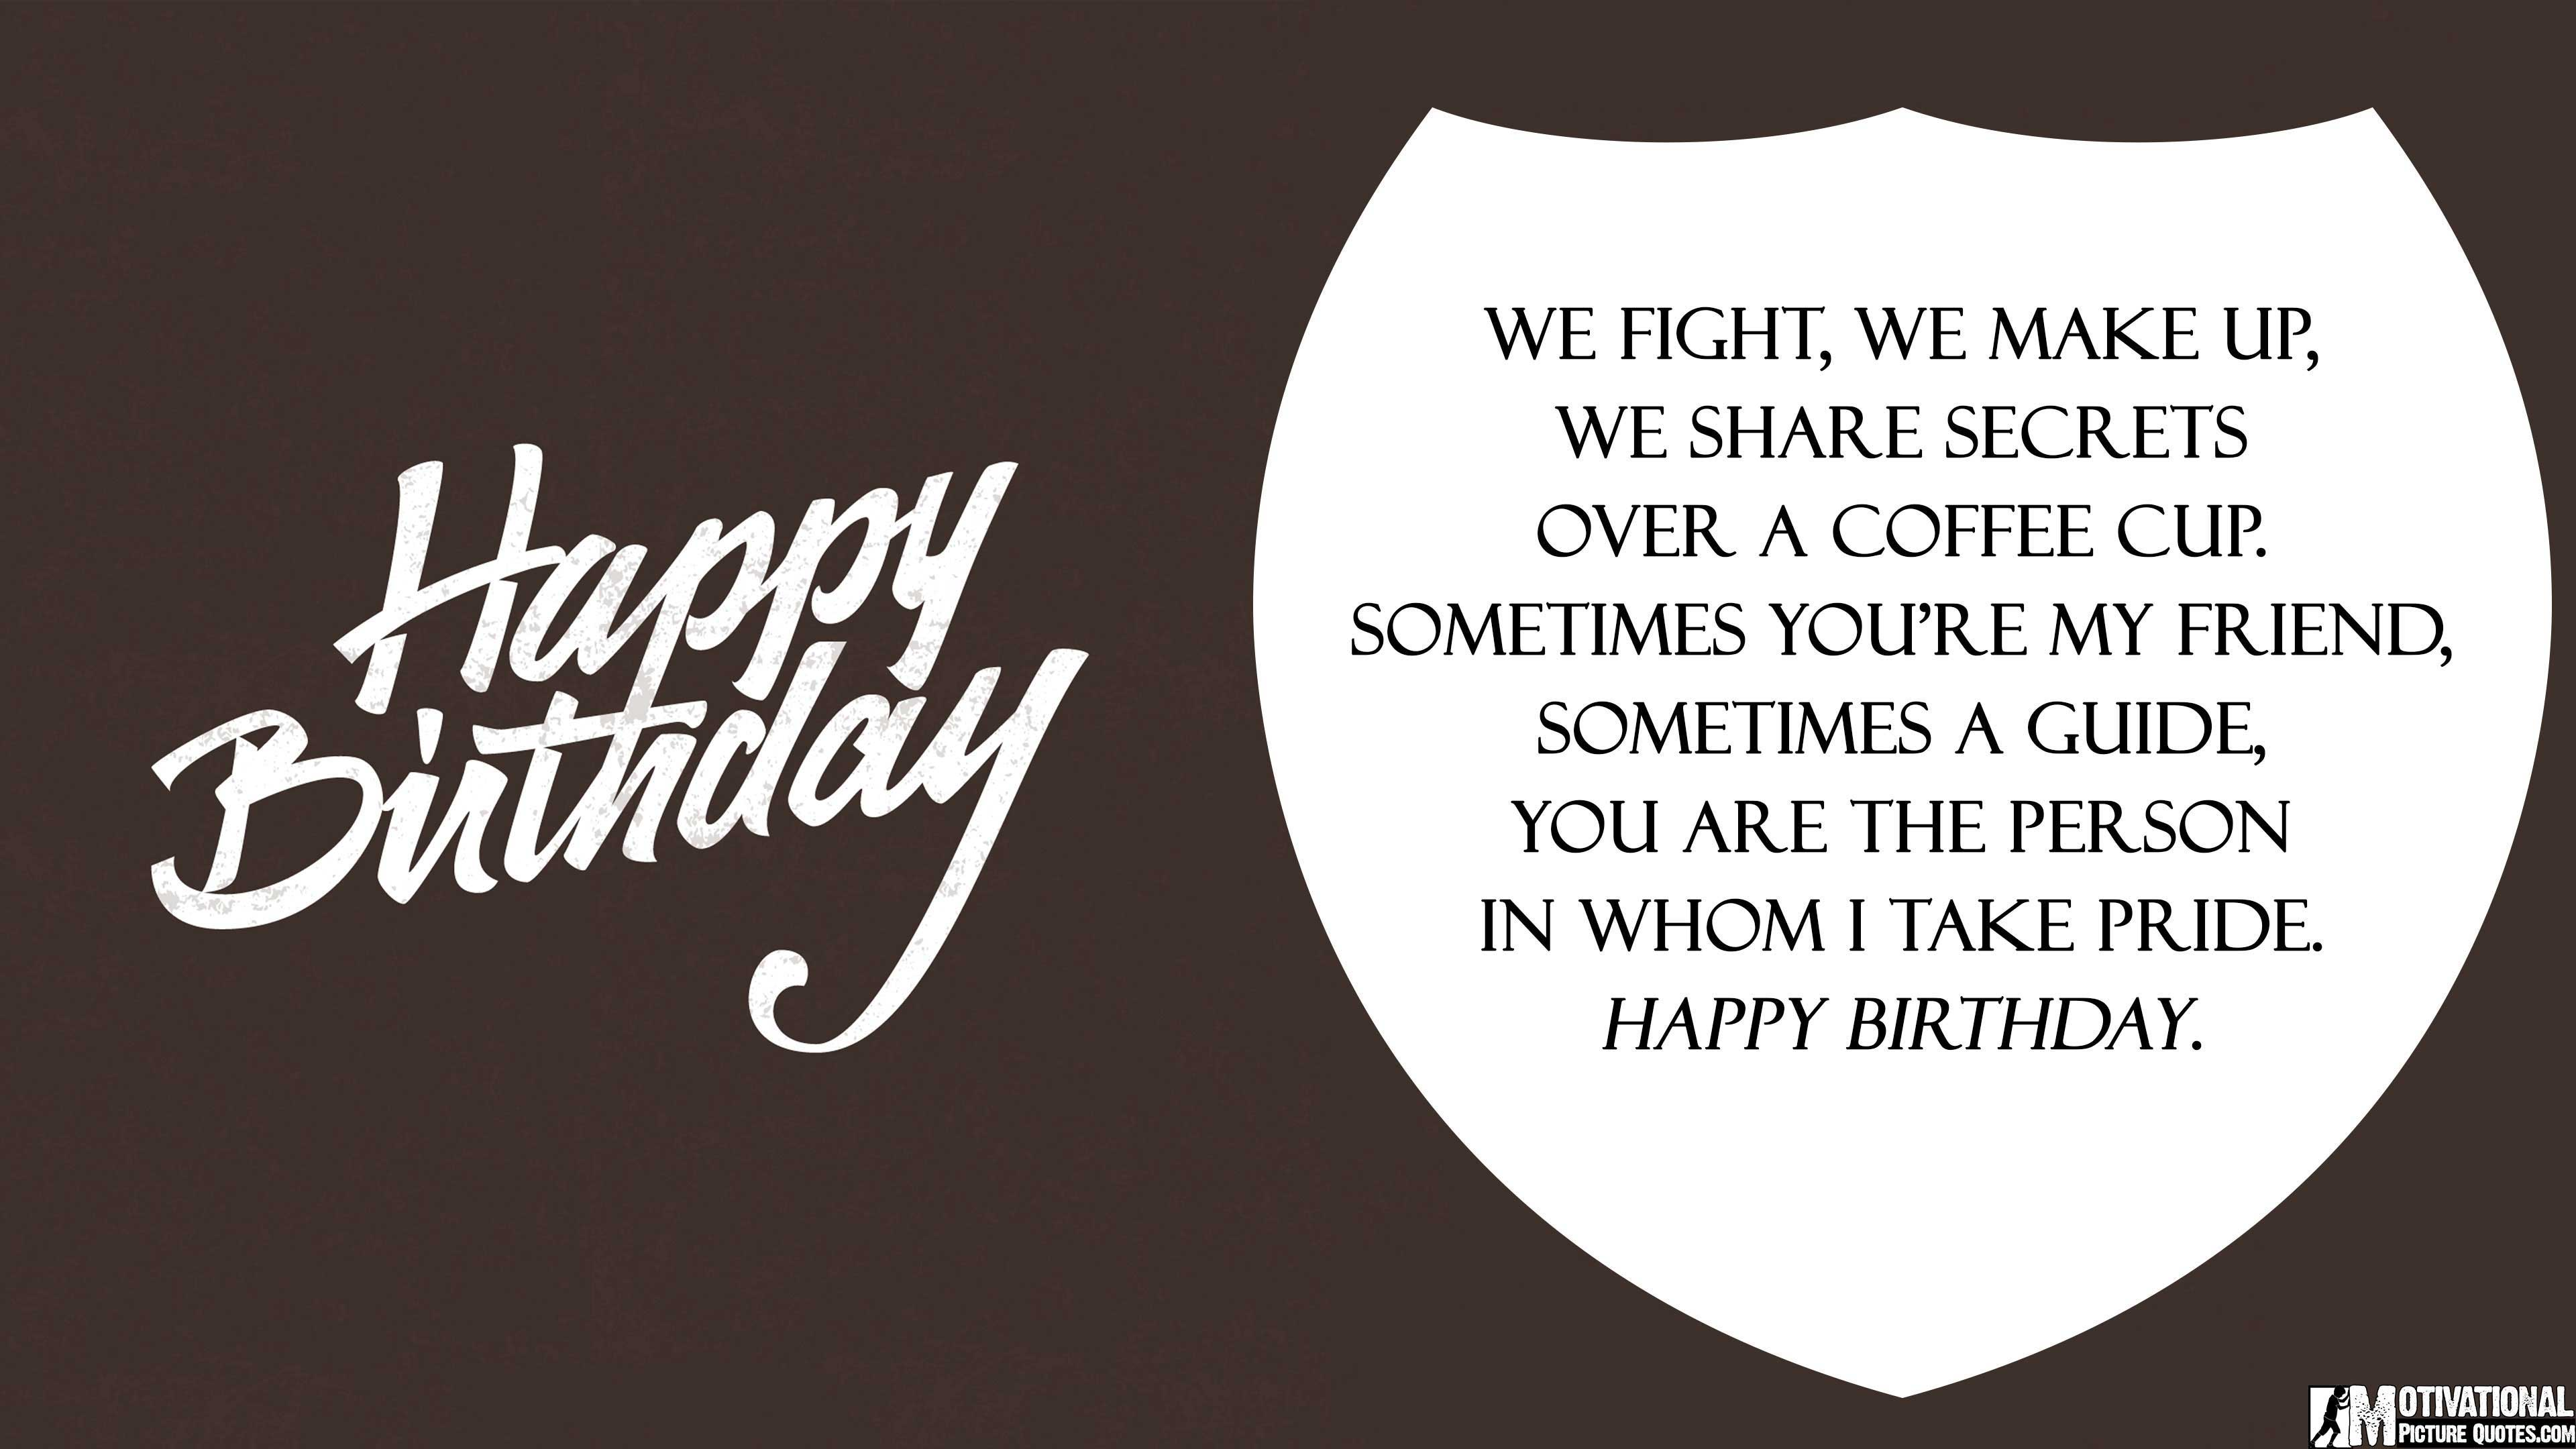 Quotes For Him 35 Inspirational Birthday Quotes Images  Insbright